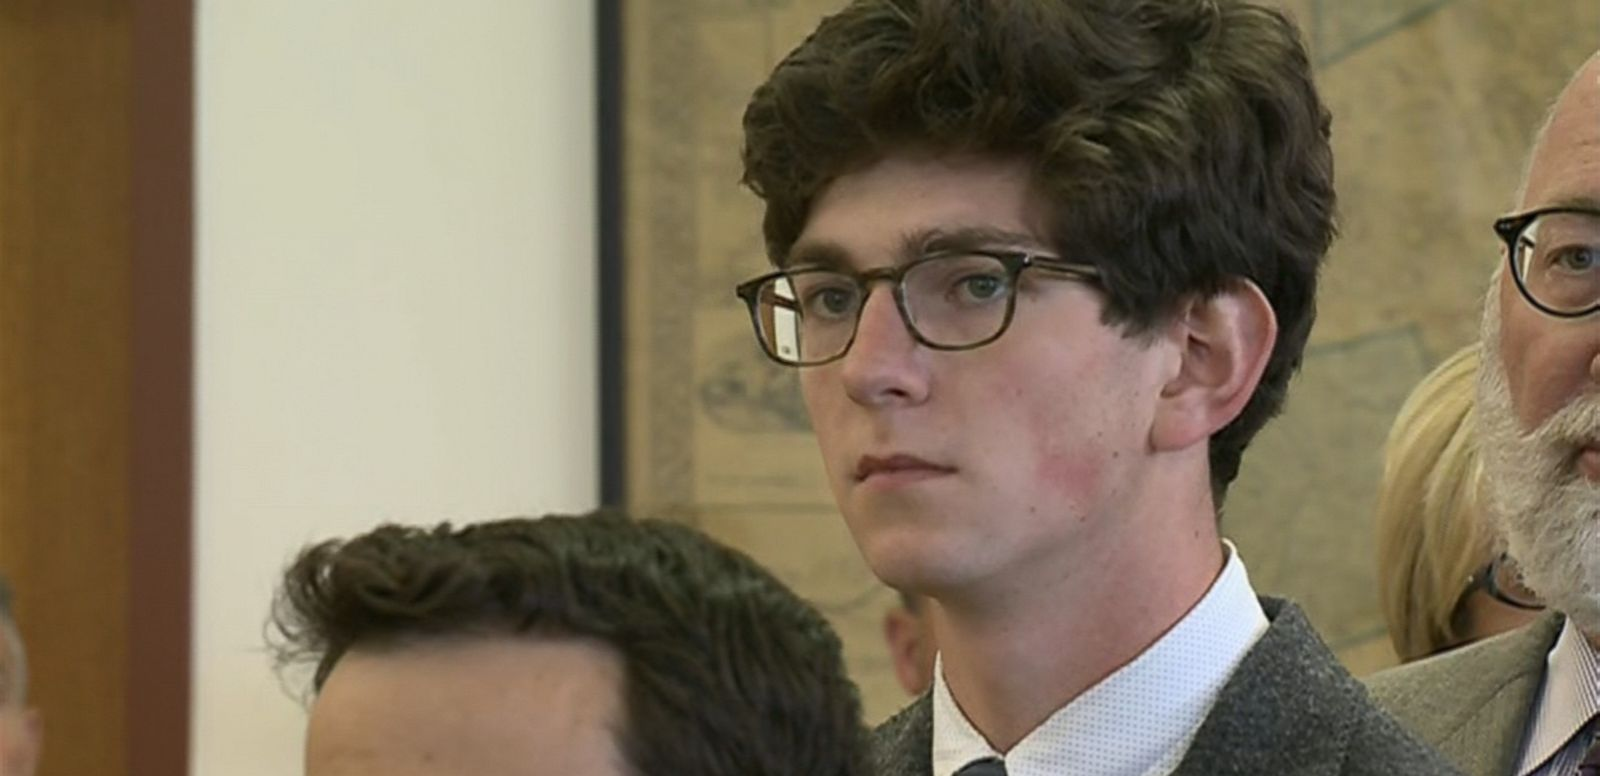 VIDEO: Labrie started crying as the verdicts were read by the jury in the nine charges brought by a fellow student at St. Paul's School in New Hampshire.